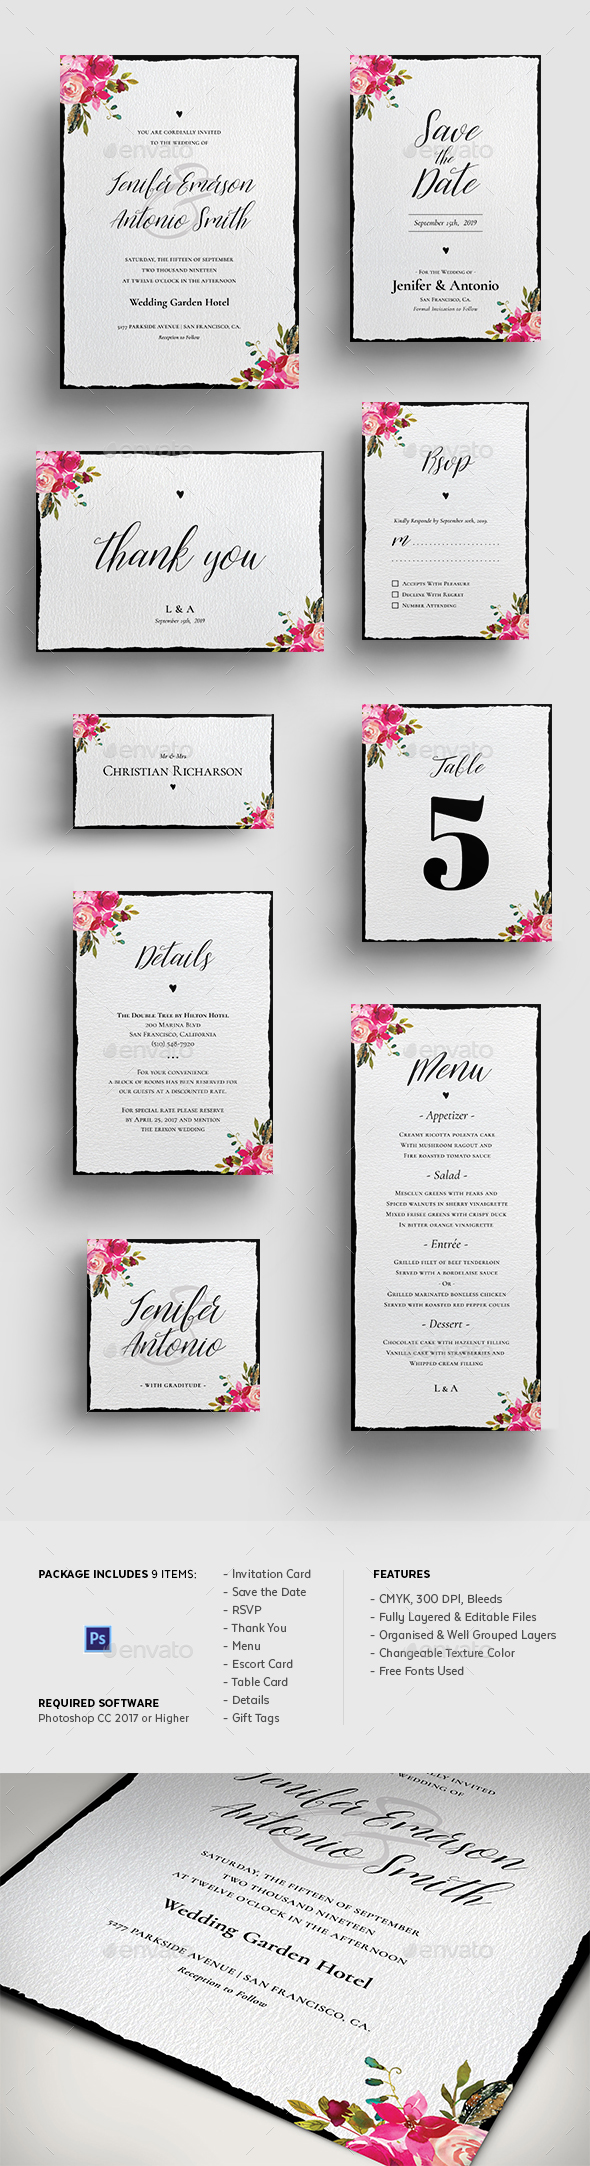 2020's Best Selling Wedding Invitation Templates